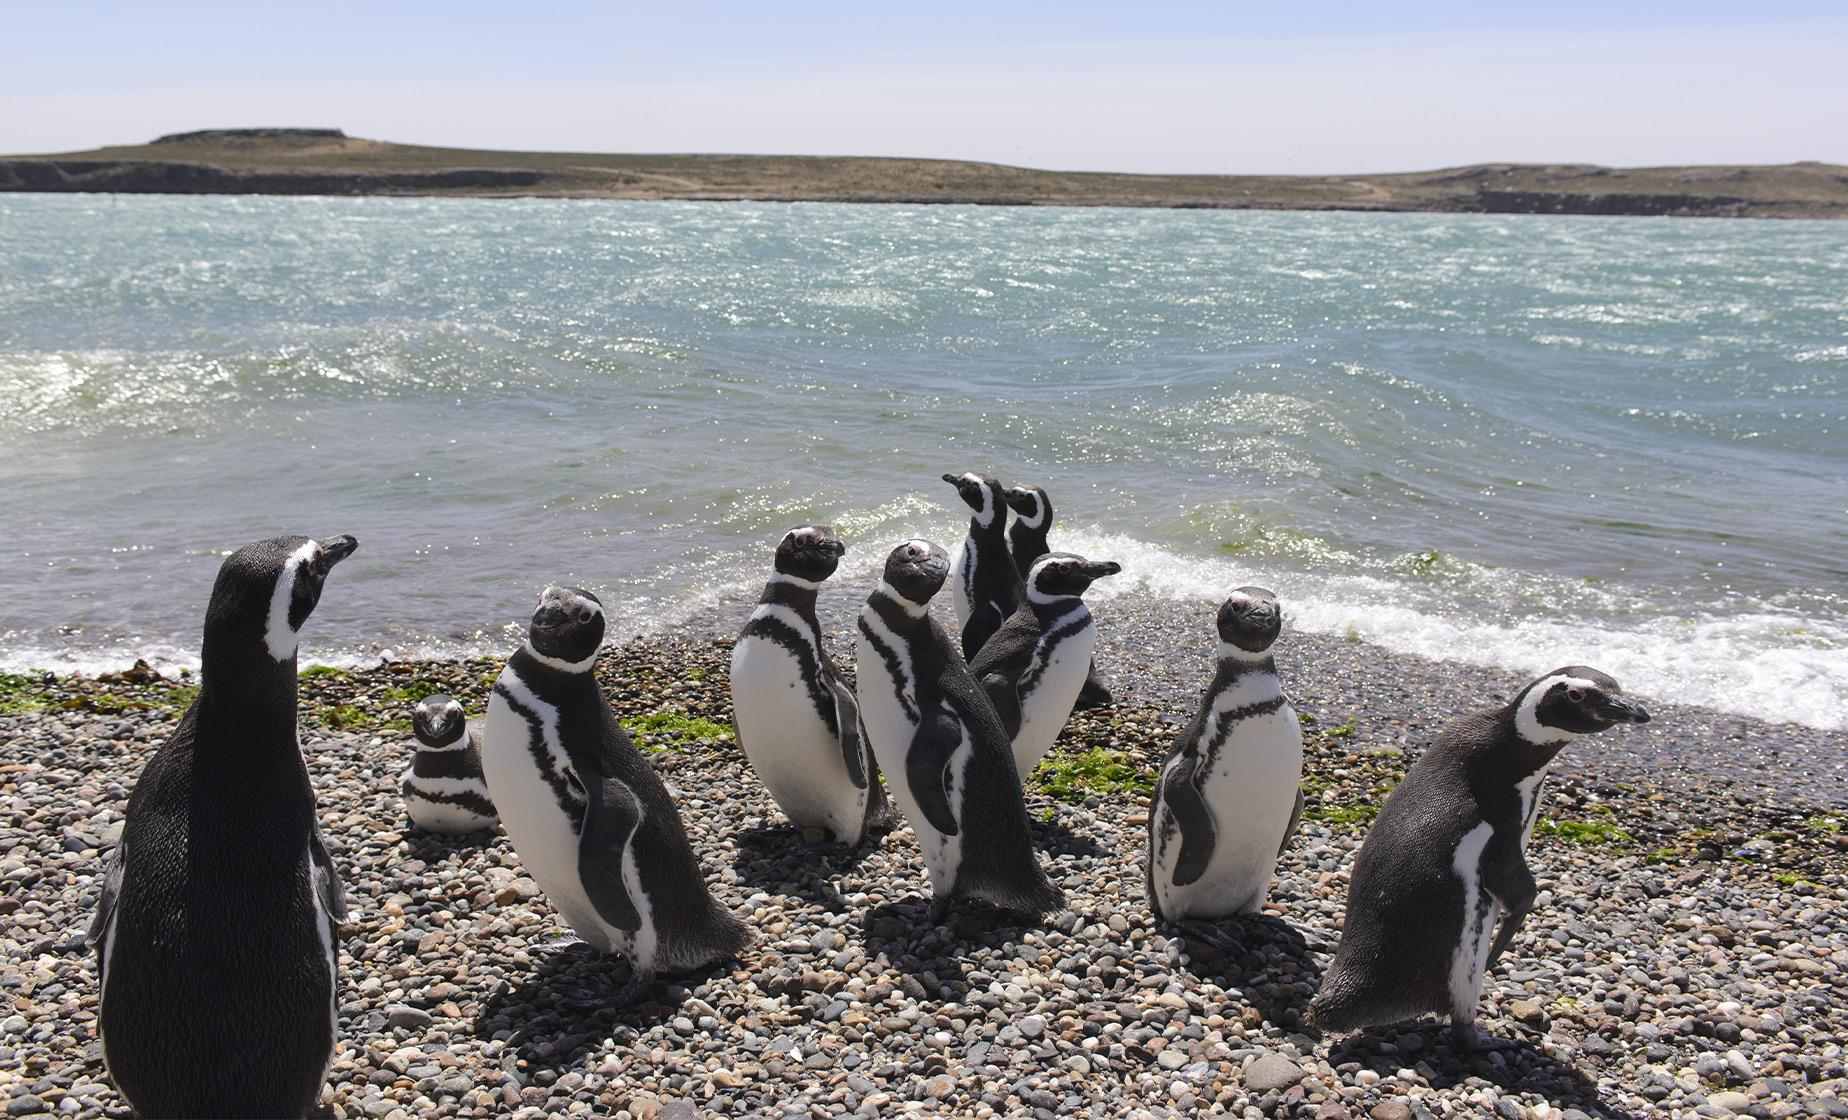 Punta Tombo Penguin Rookery